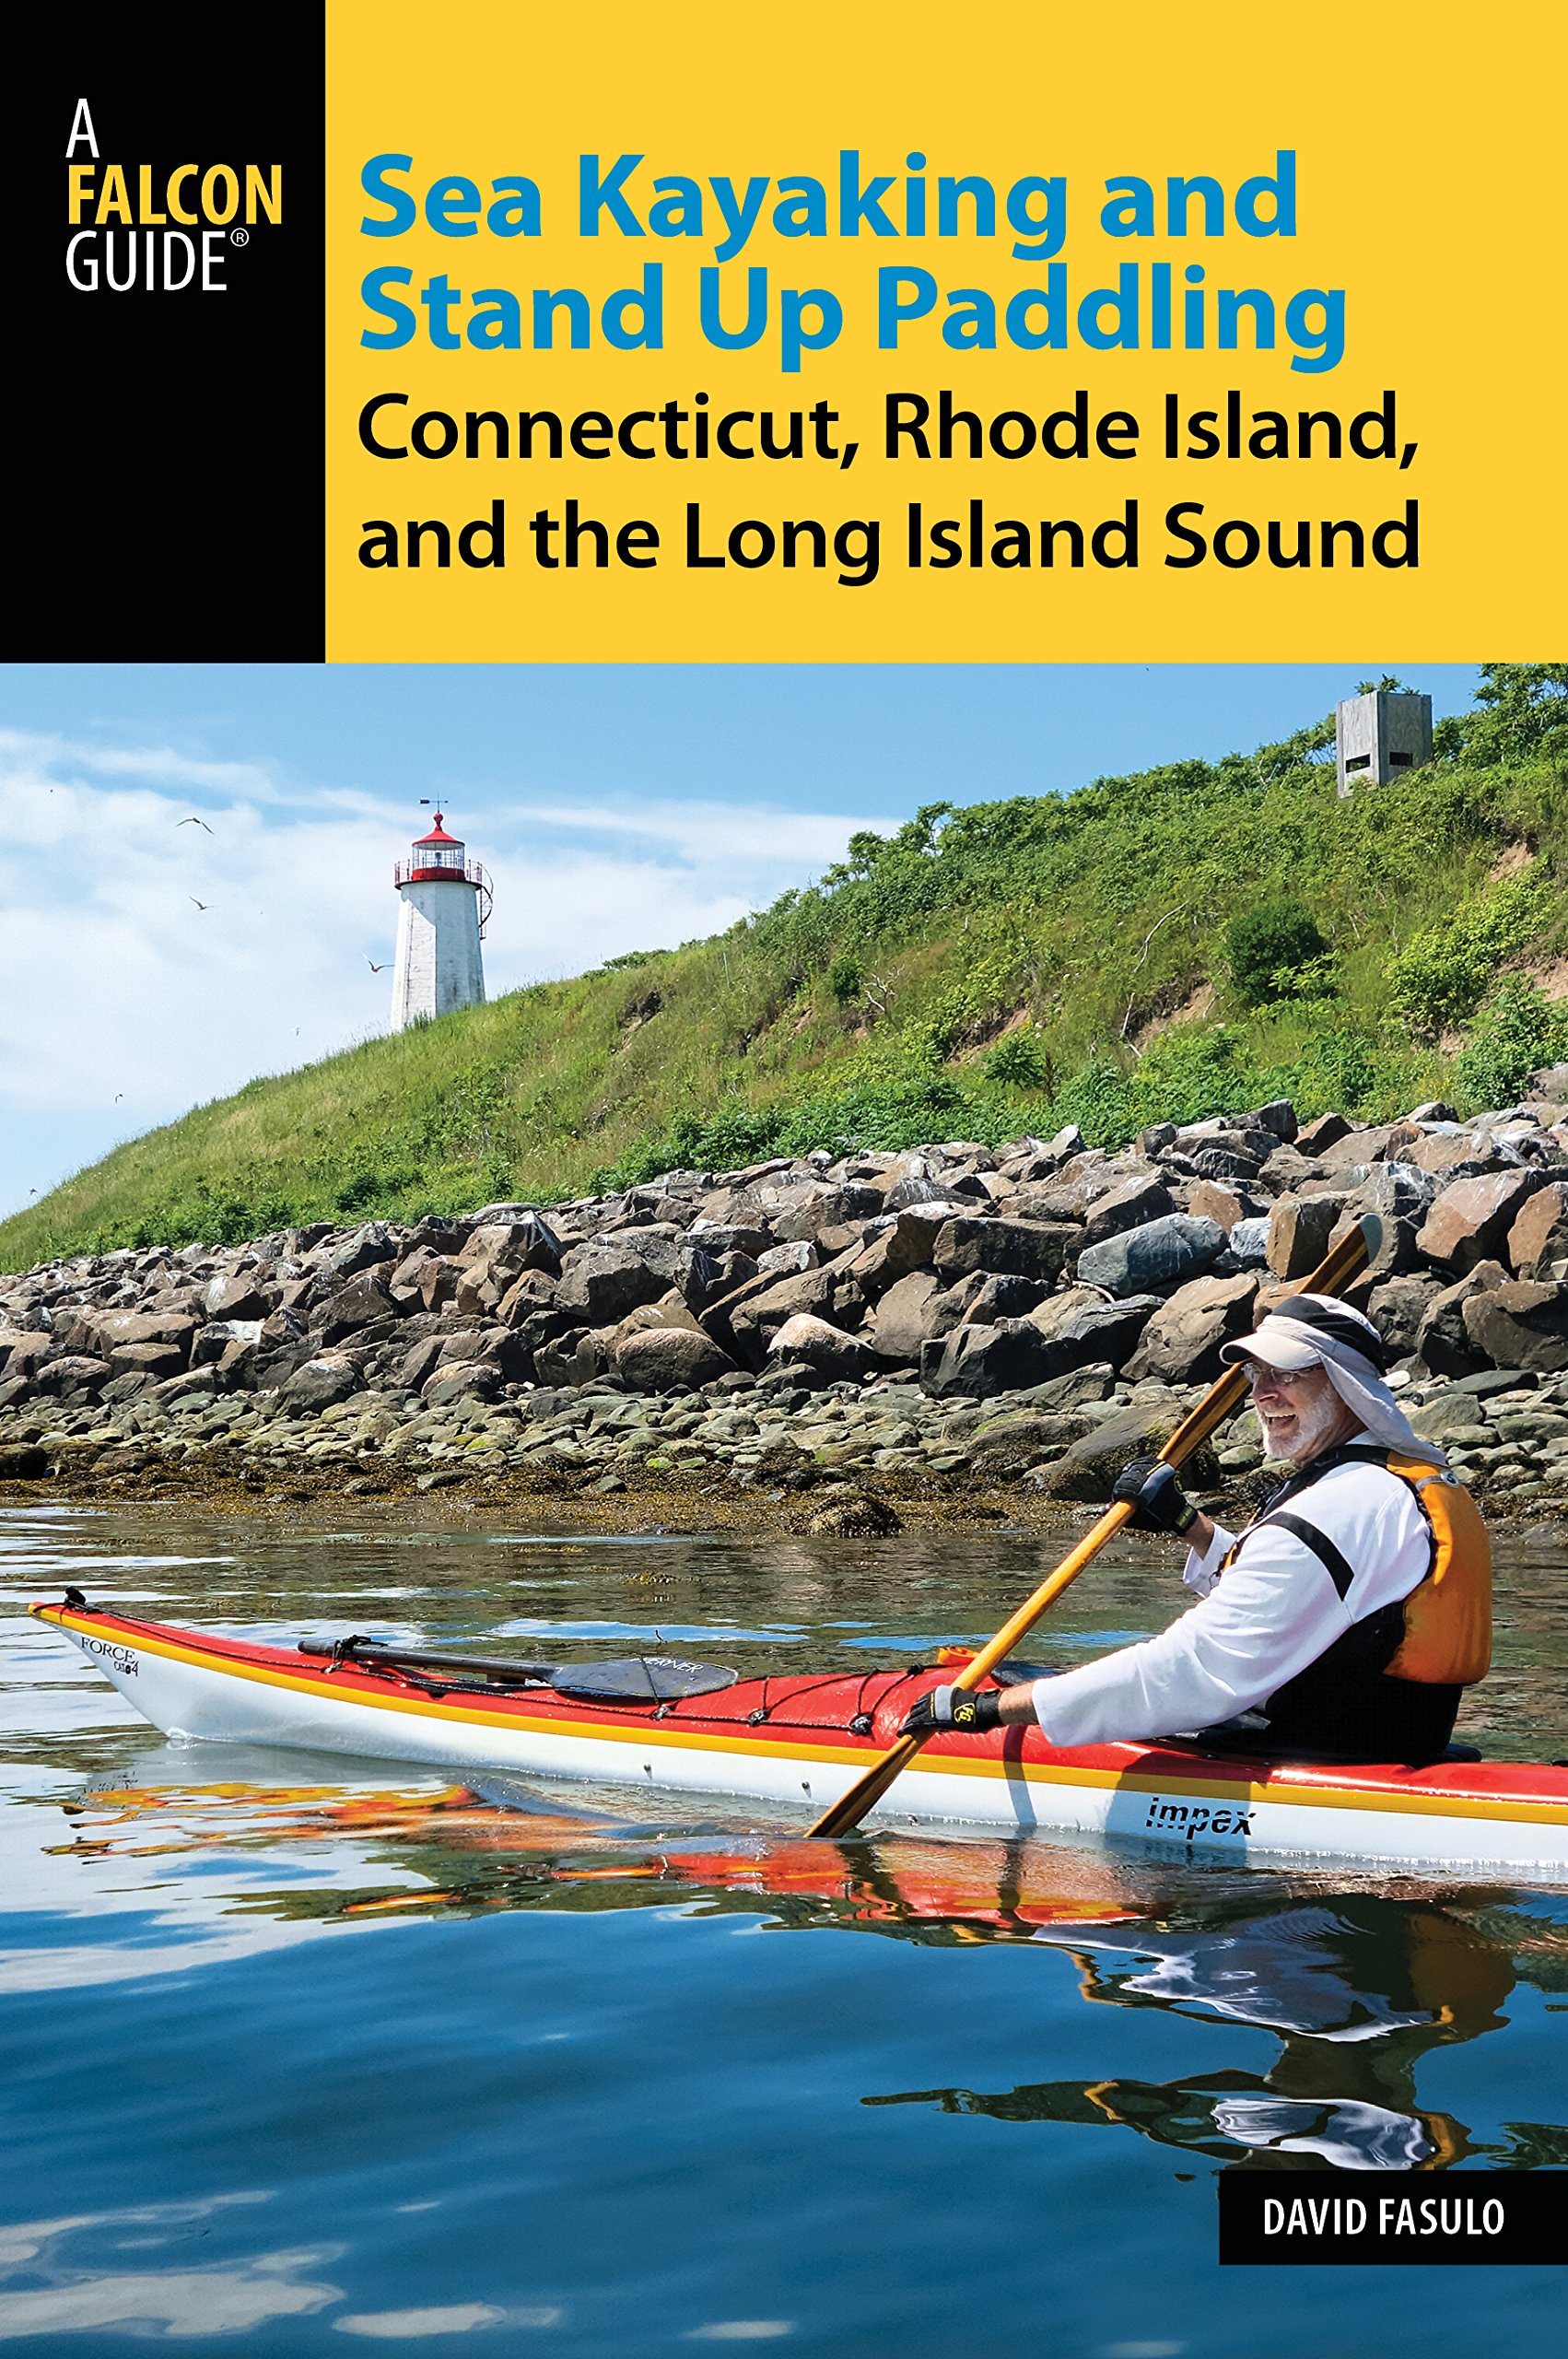 sea kayaking and stand up paddling connecticut rhode island and